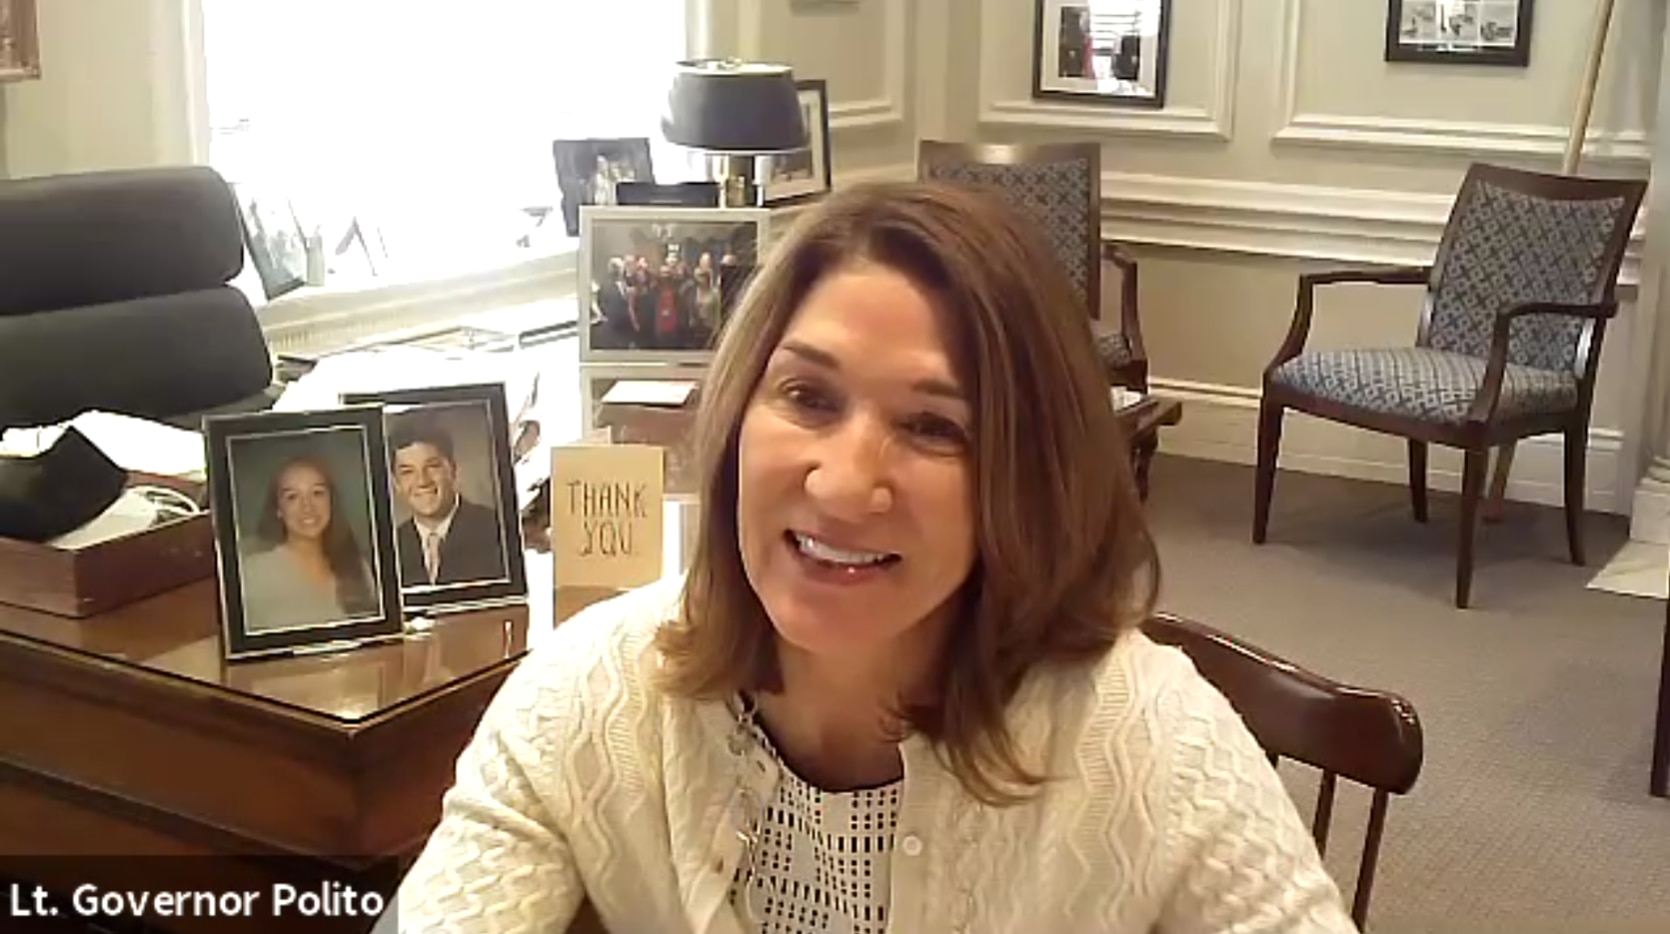 Lt. Governor Polito smiling in office